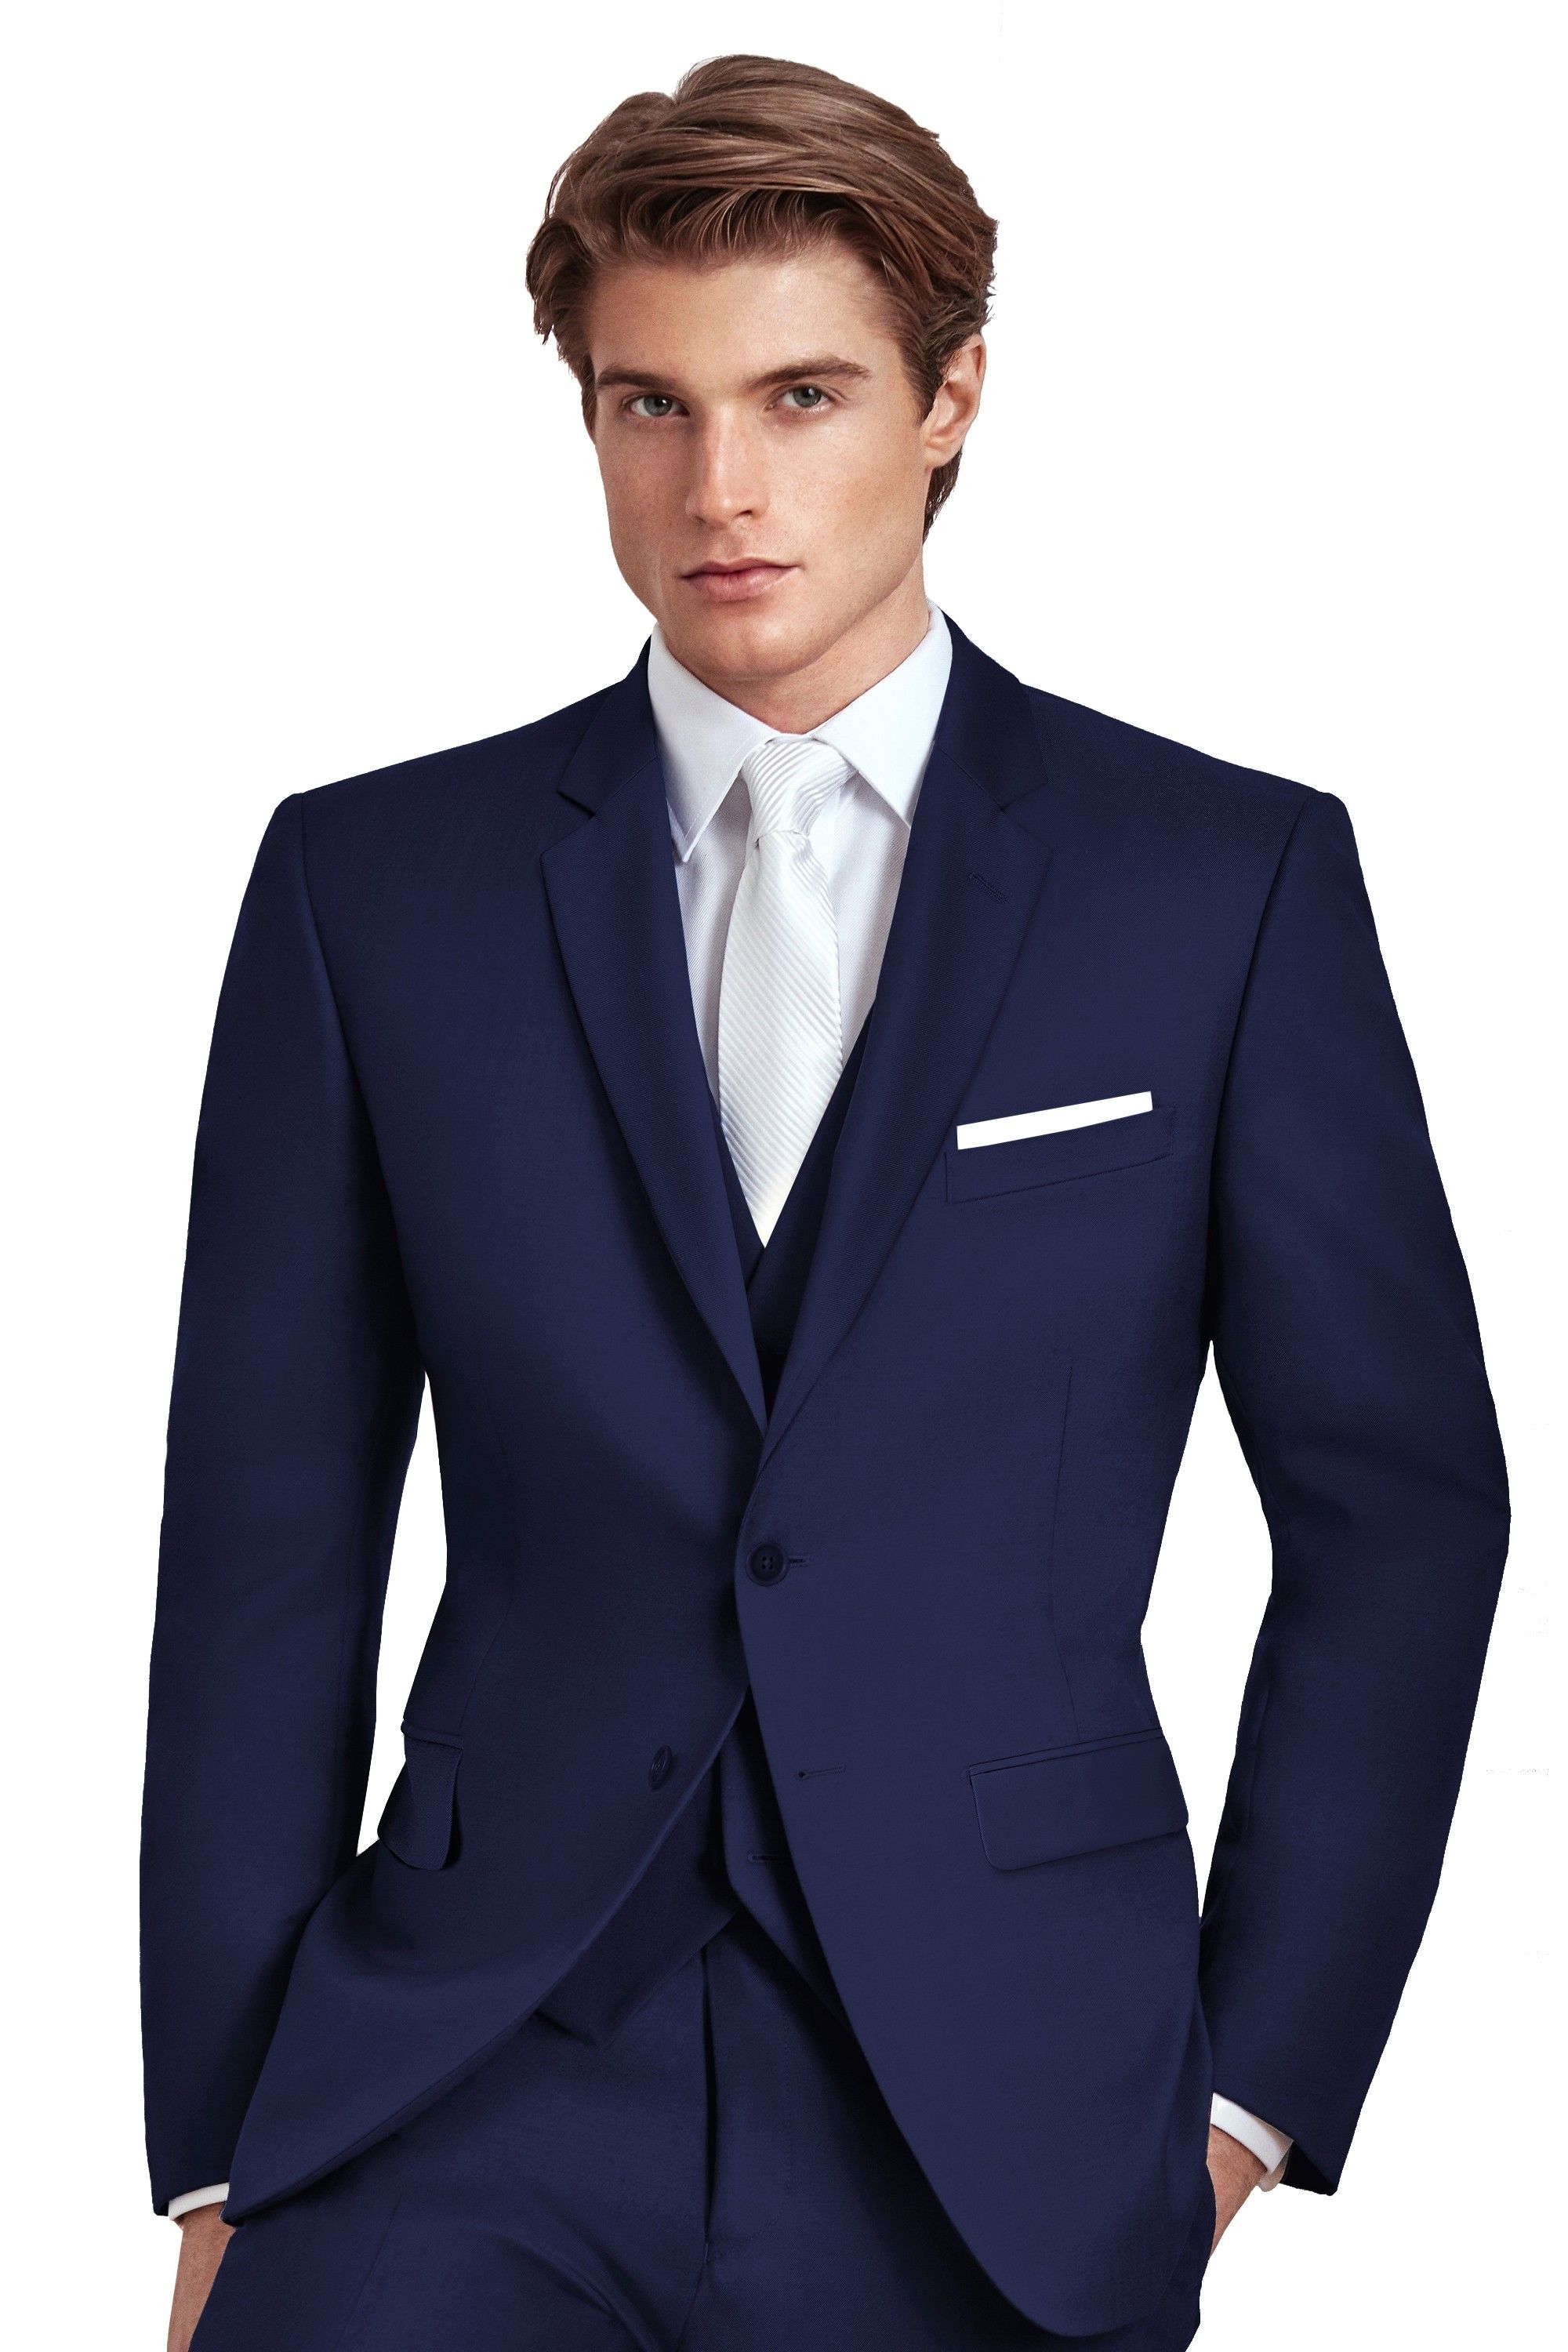 Colin by Ike BeharTuxedo Central. Navy blue Slim Fit